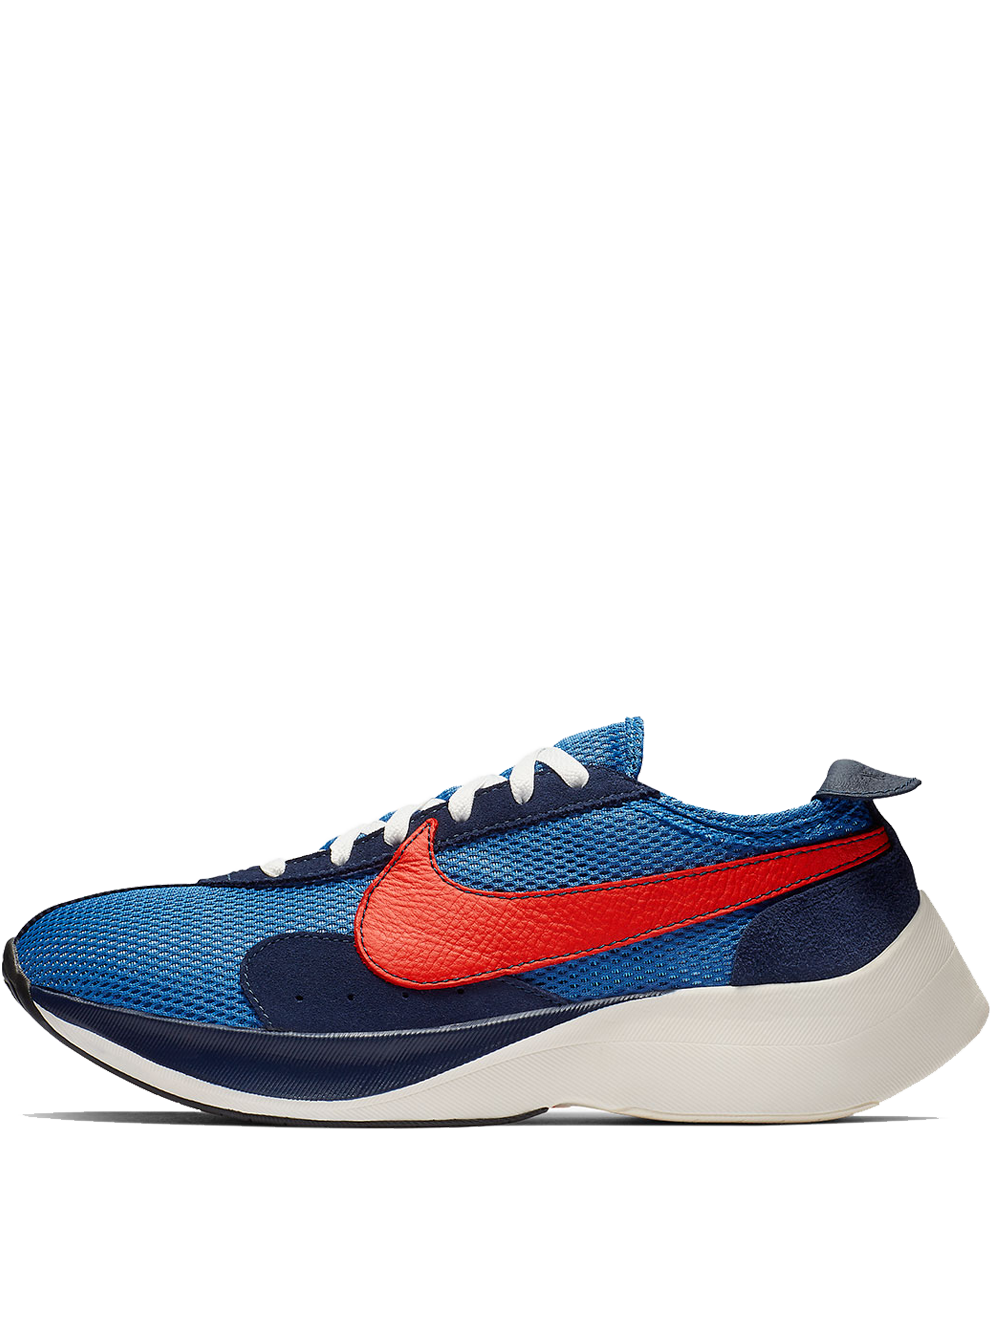 NIKE MOON RACER QS MOUNTAIN BLUE/TEAM ORANGE-MID NAVY